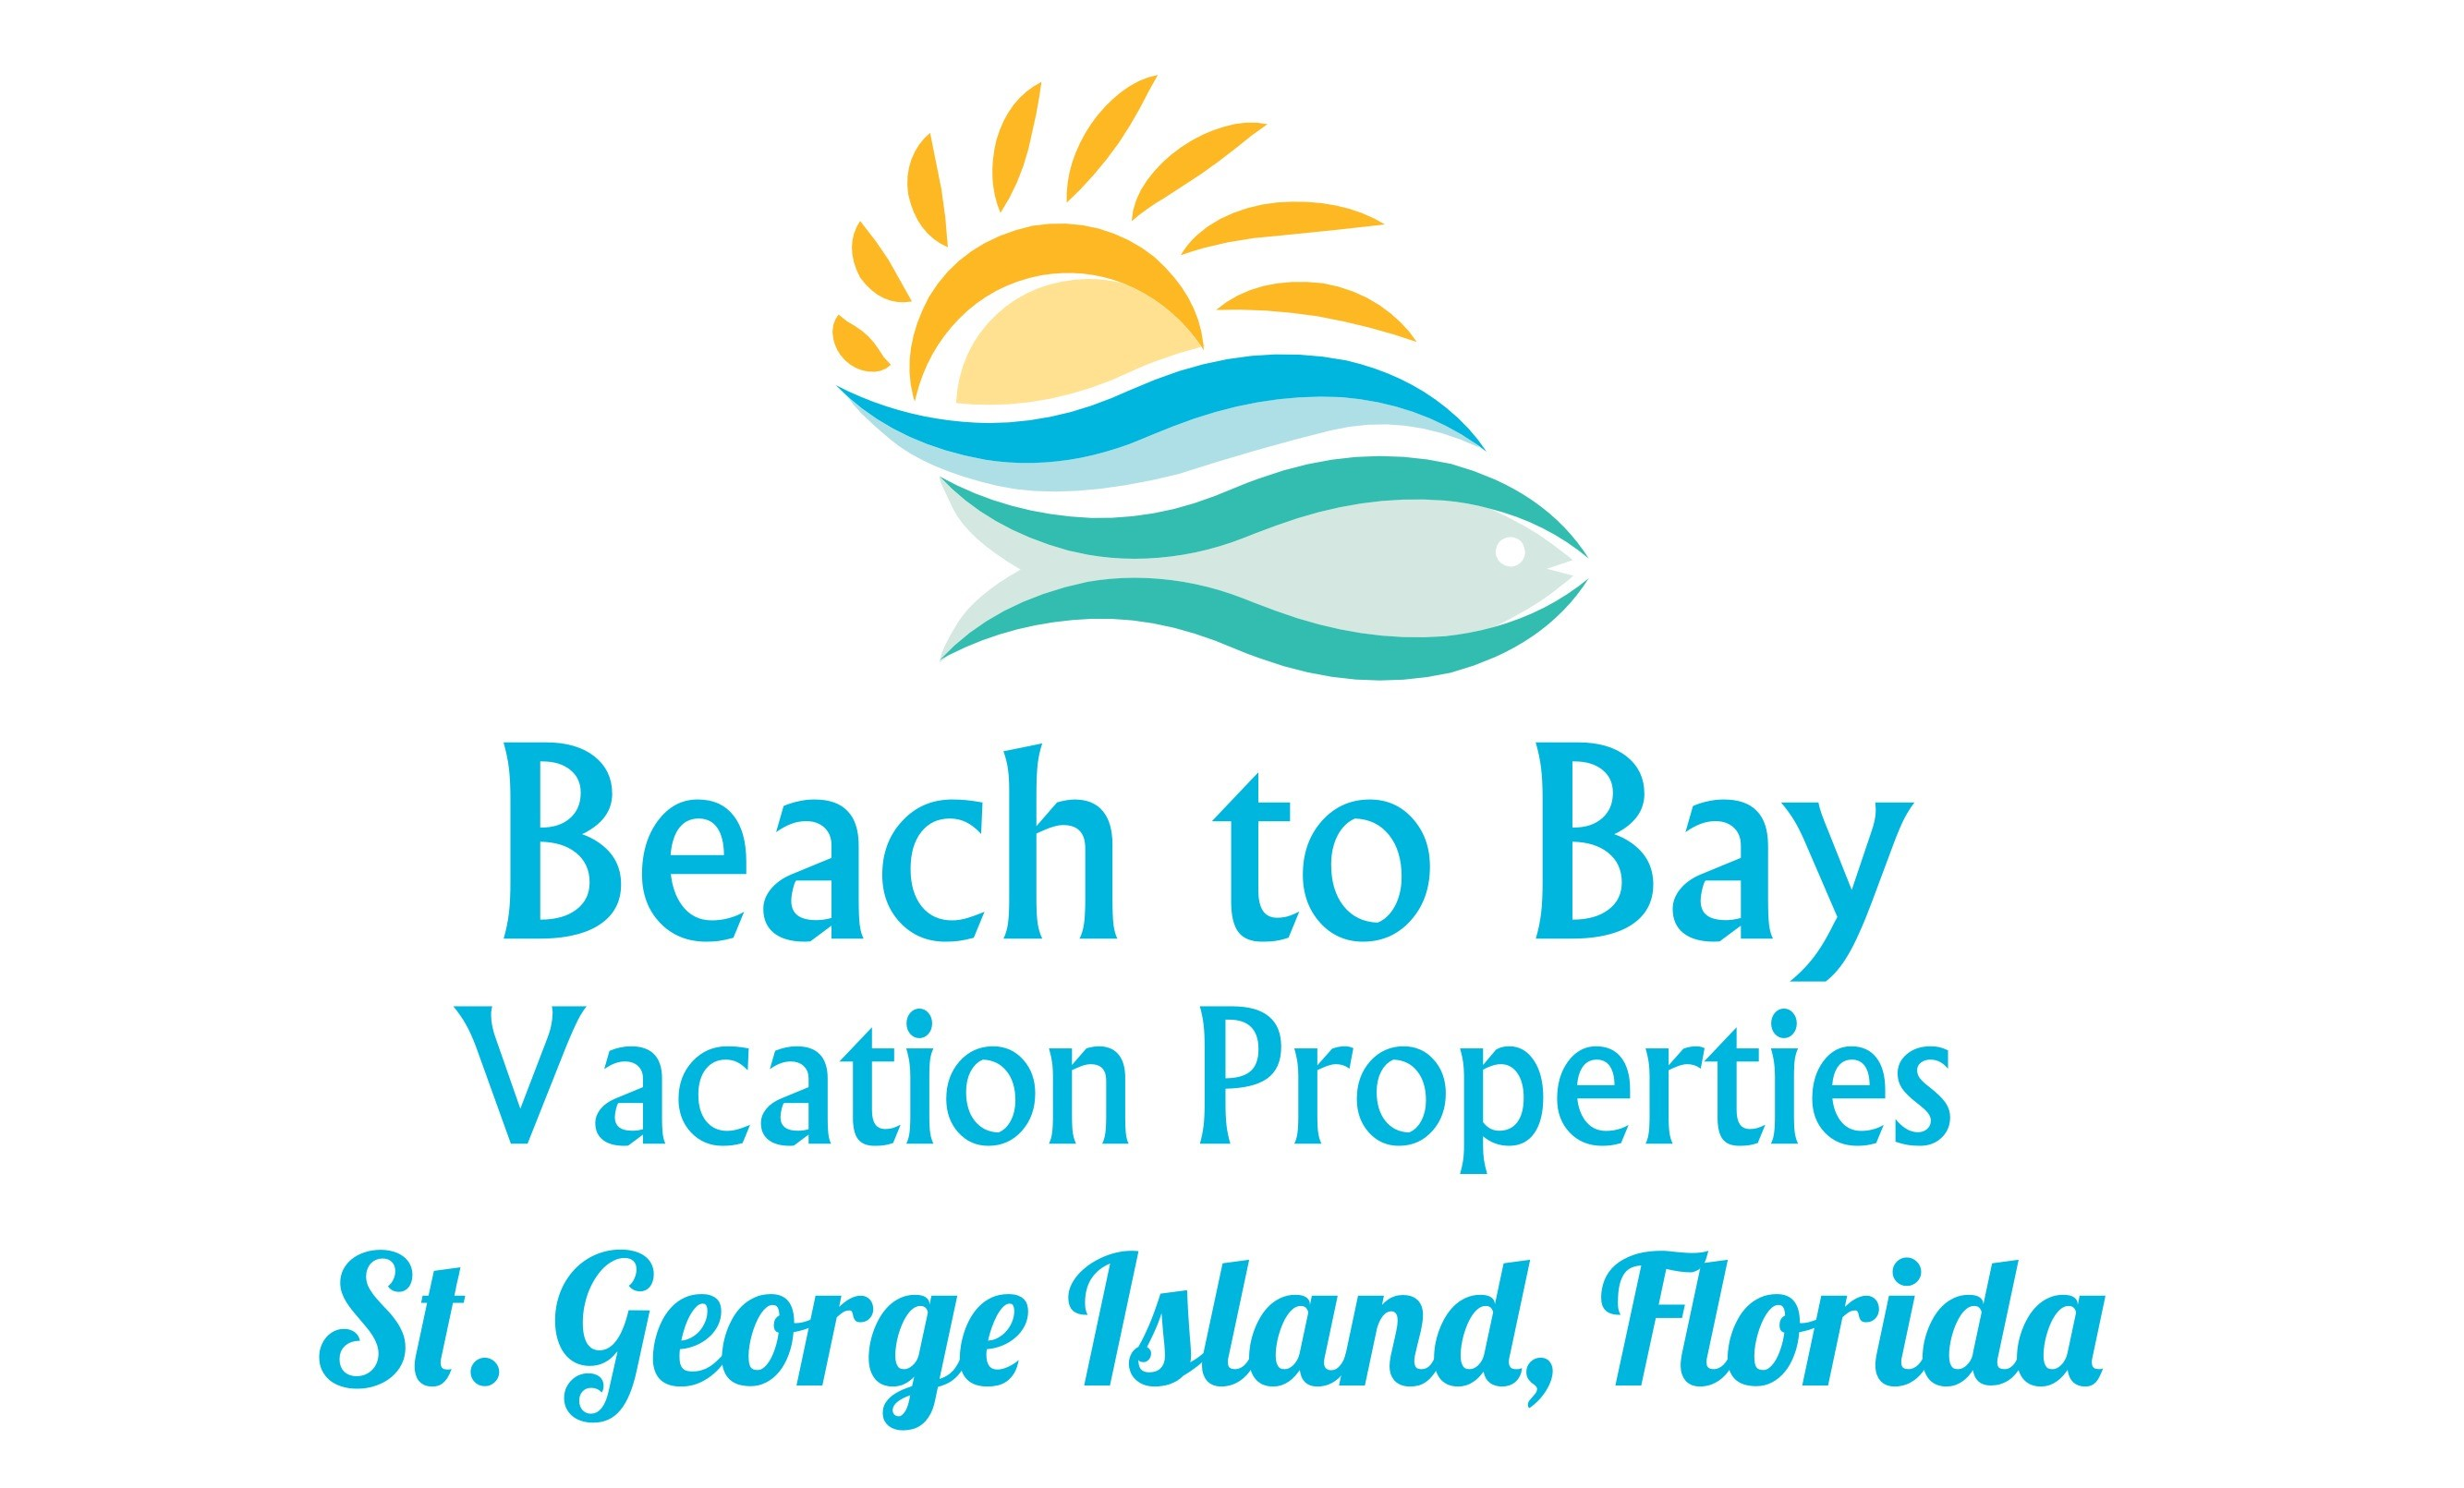 Beach to Bay Vacation Properties